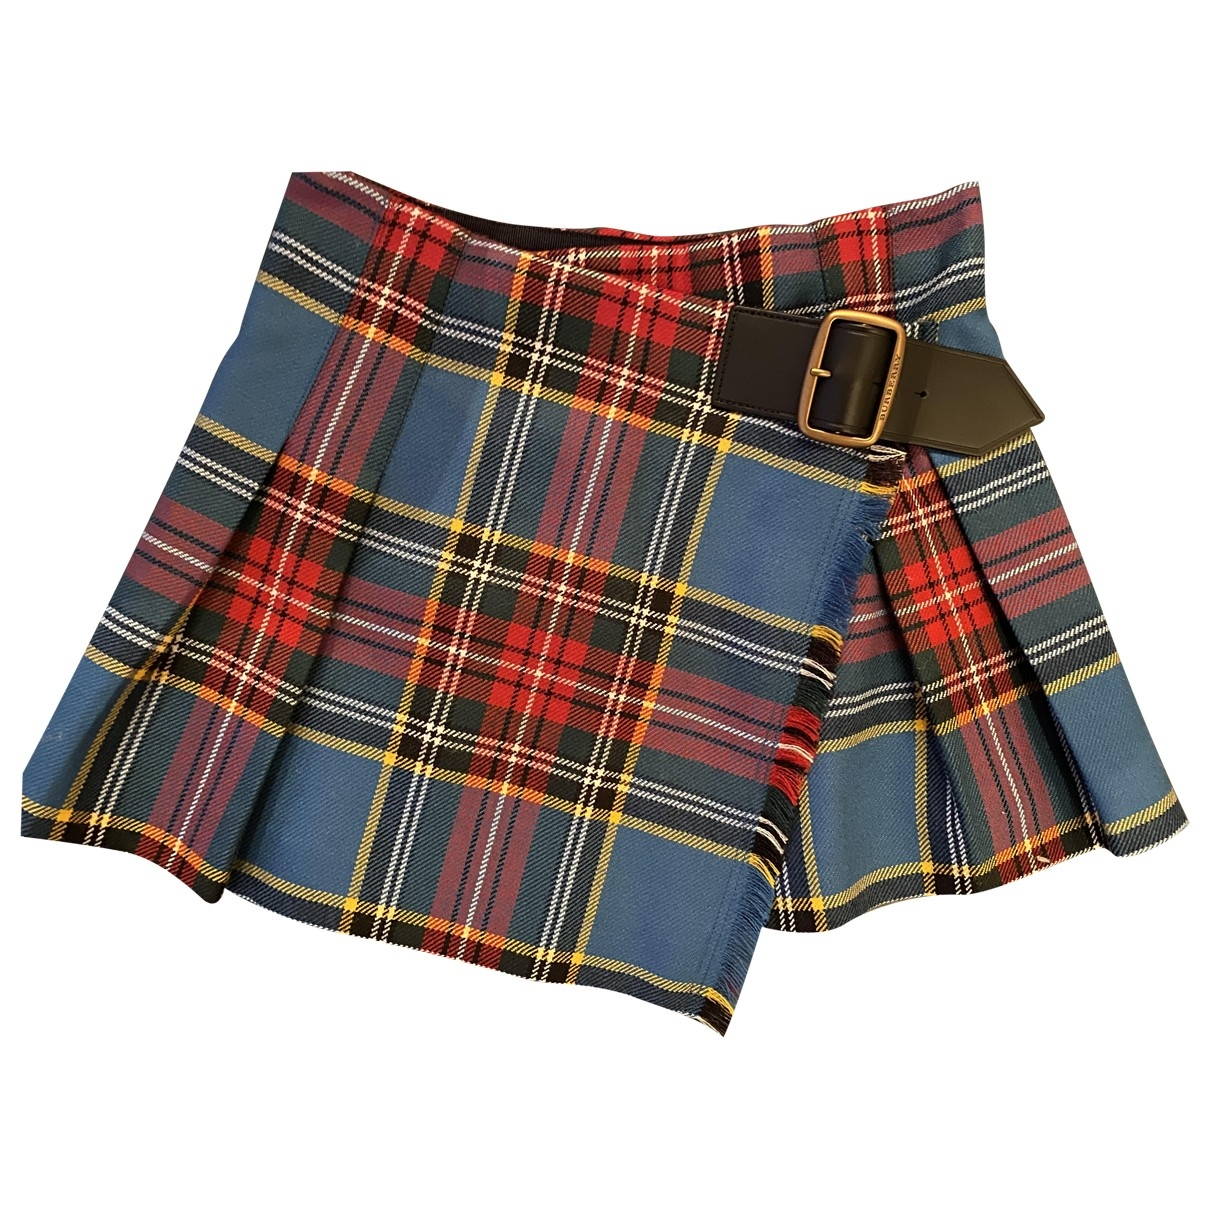 Burberry \N Multicolour skirt for Kids 4 years - until 40 inches UK